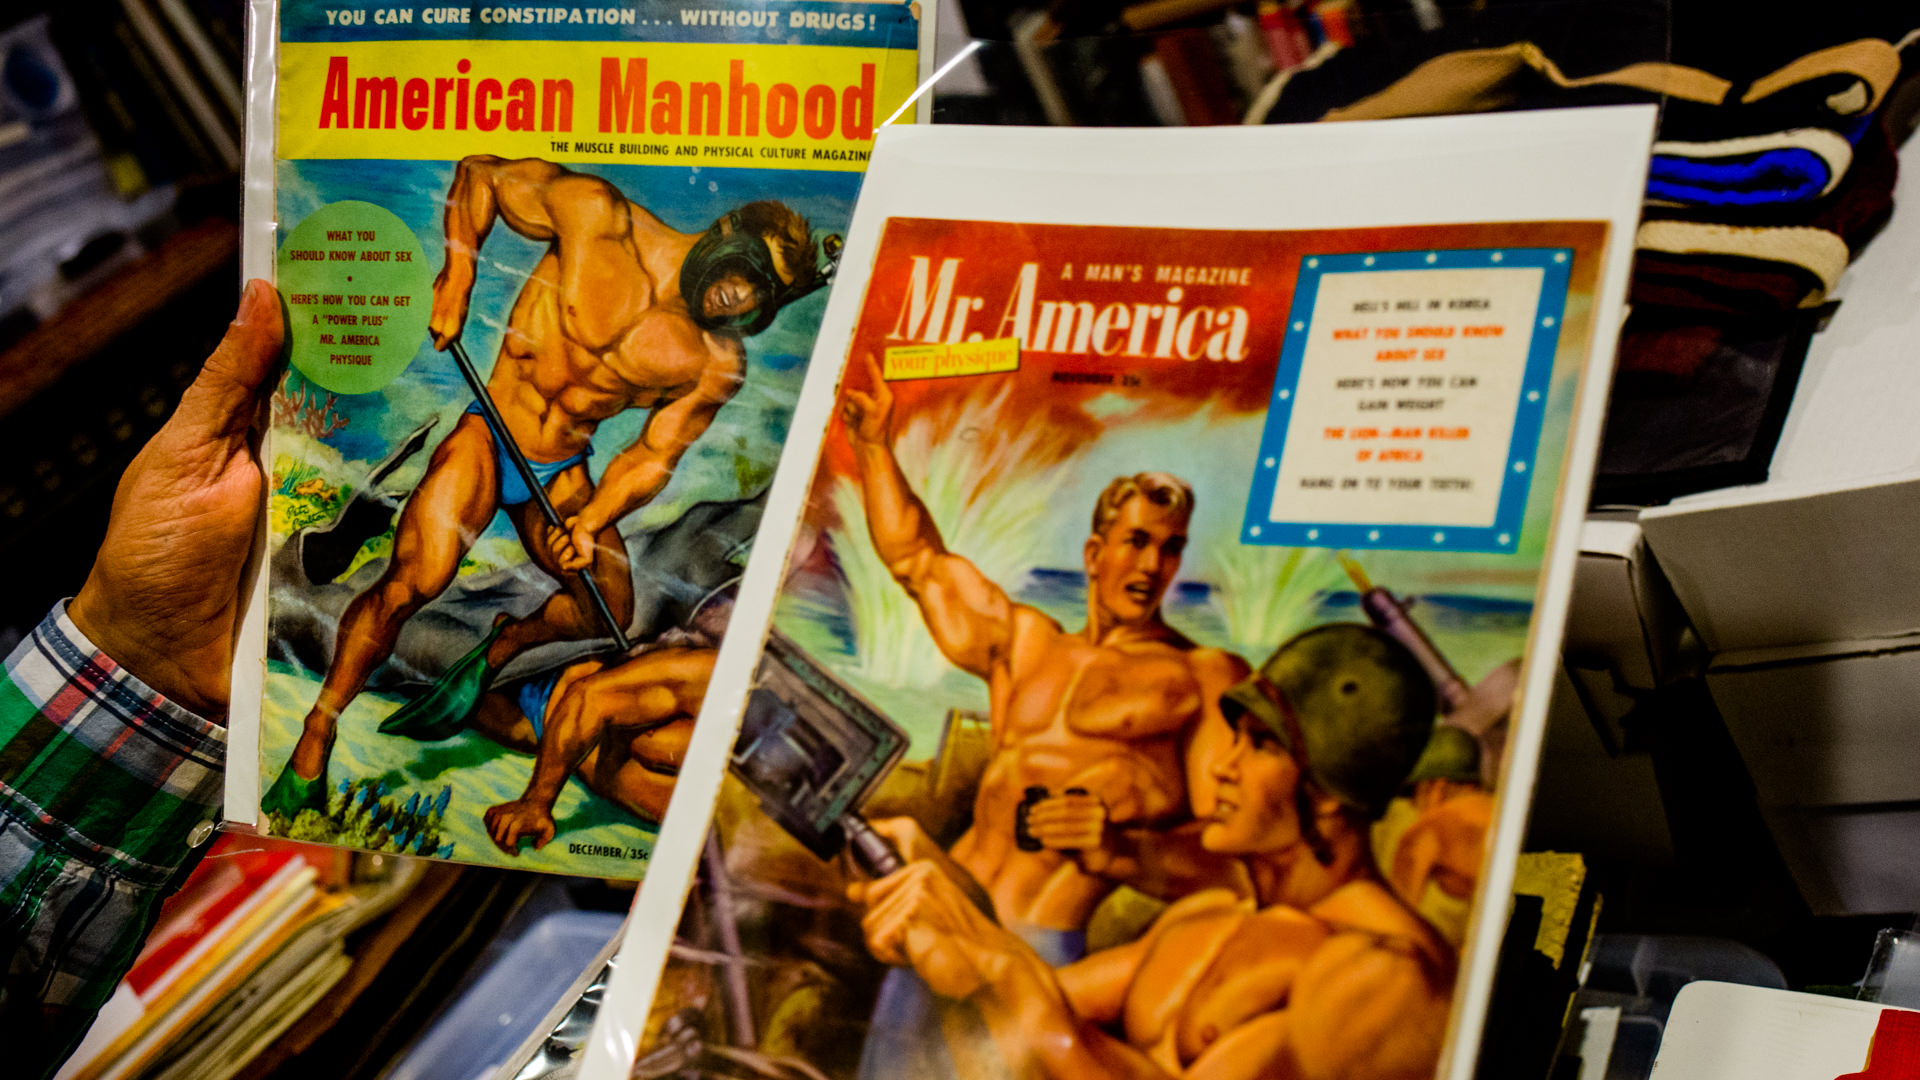 Jim_Heimann_collection_american_manhood_mr_america_magazines.jpg